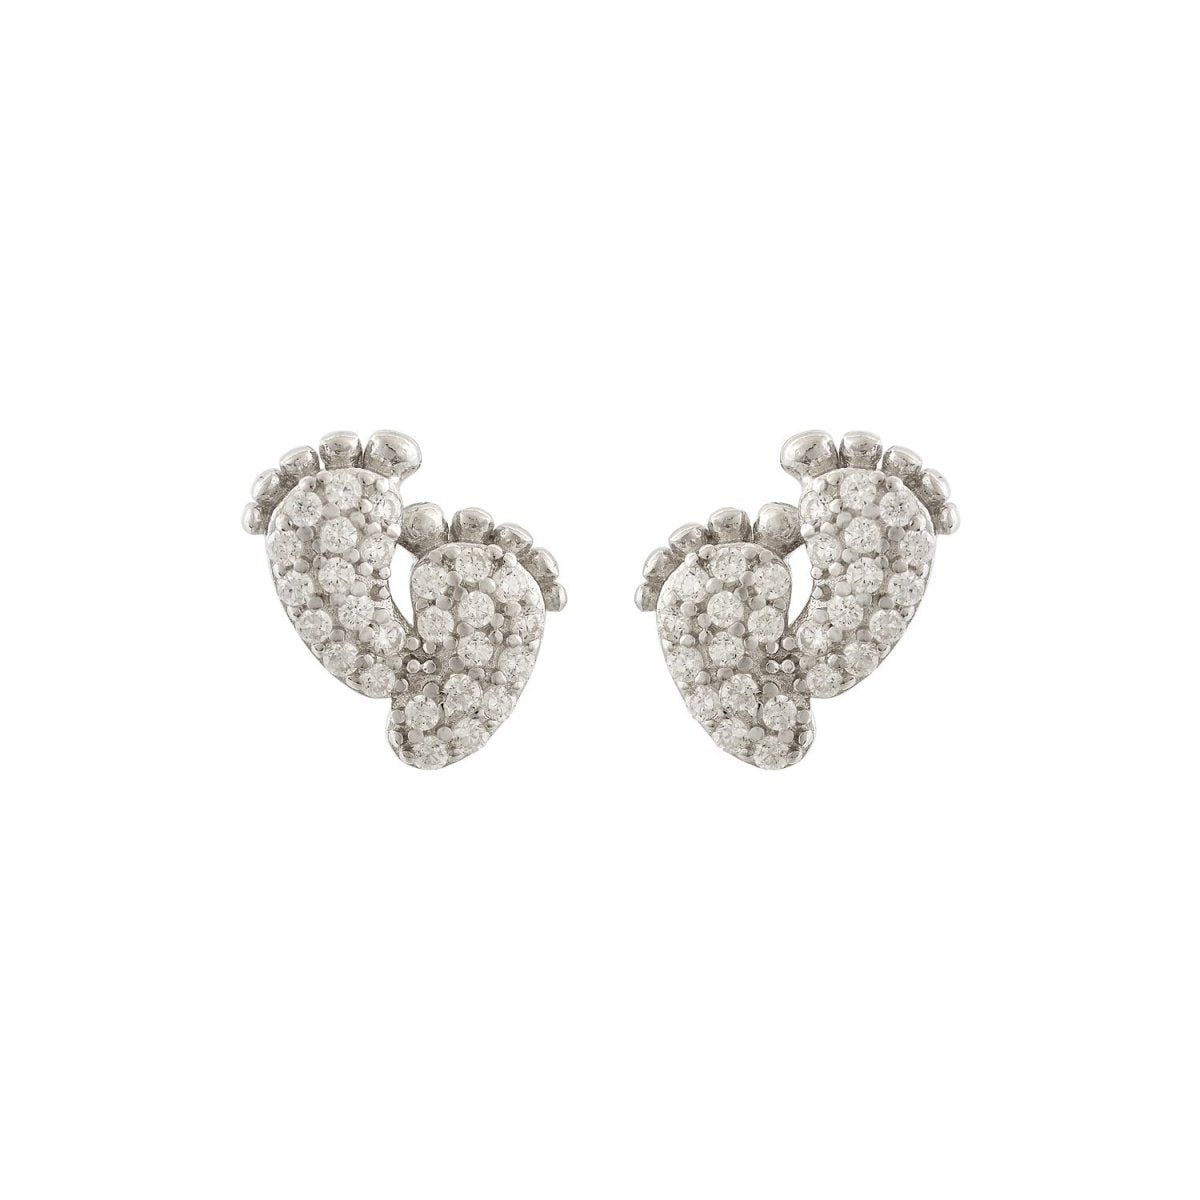 Earrings ES1848 Silver Slippers with Zircon - Goldy Jewelry Store